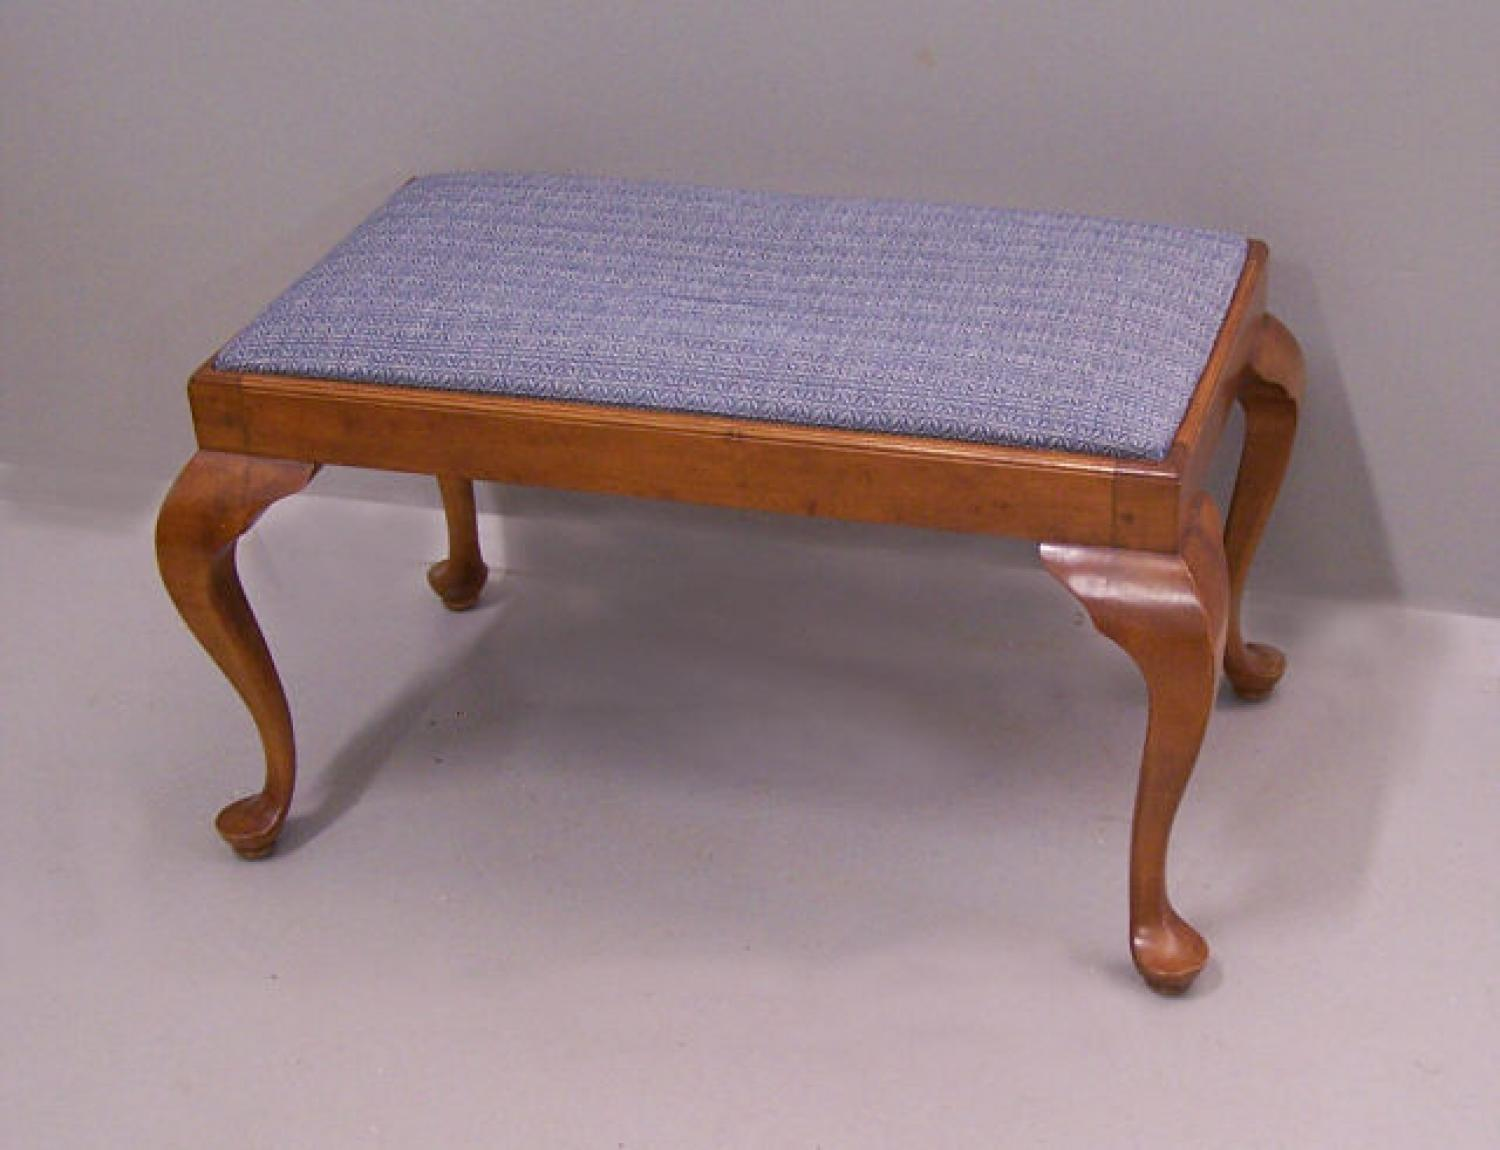 Wallace Nutting window bench with upholstered seat c1930